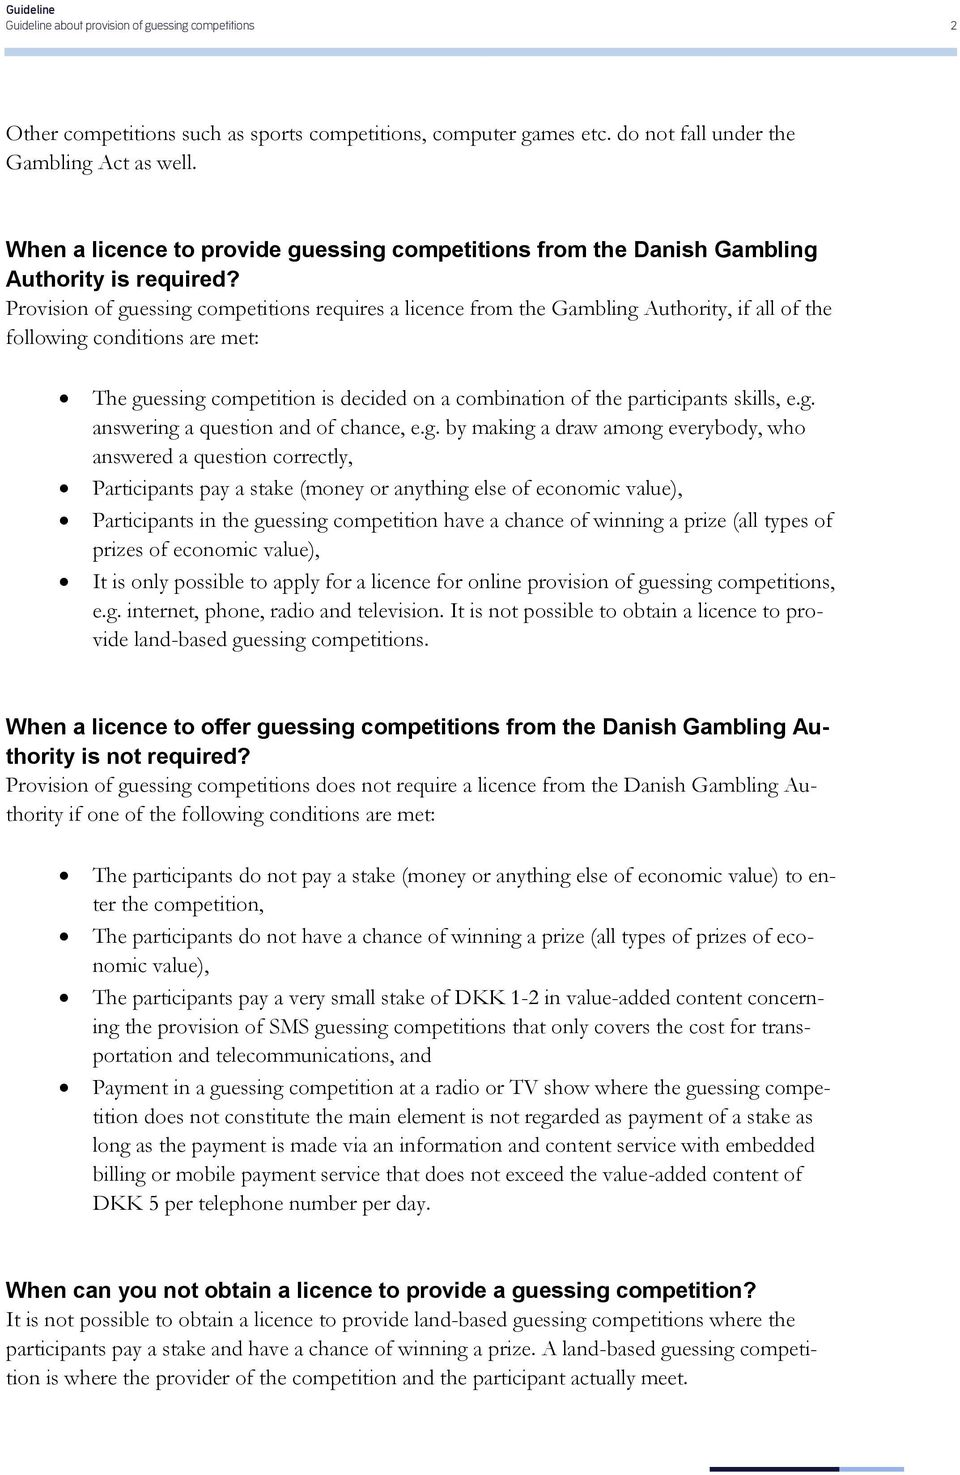 Provision of guessing competitions requires a licence from the Gambling Authority, if all of the following conditions are met: The guessing competition is decided on a combination of the participants